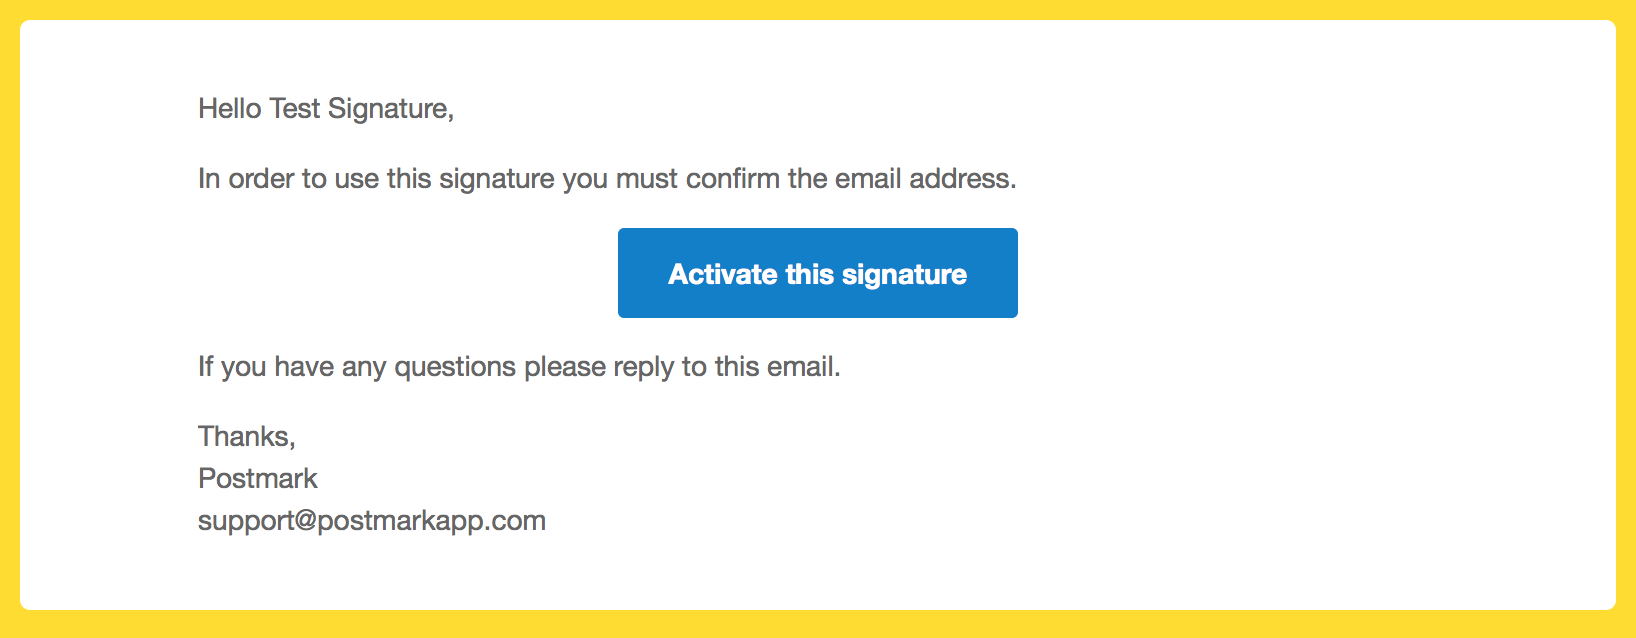 Confirm email address to activate Sender Signature